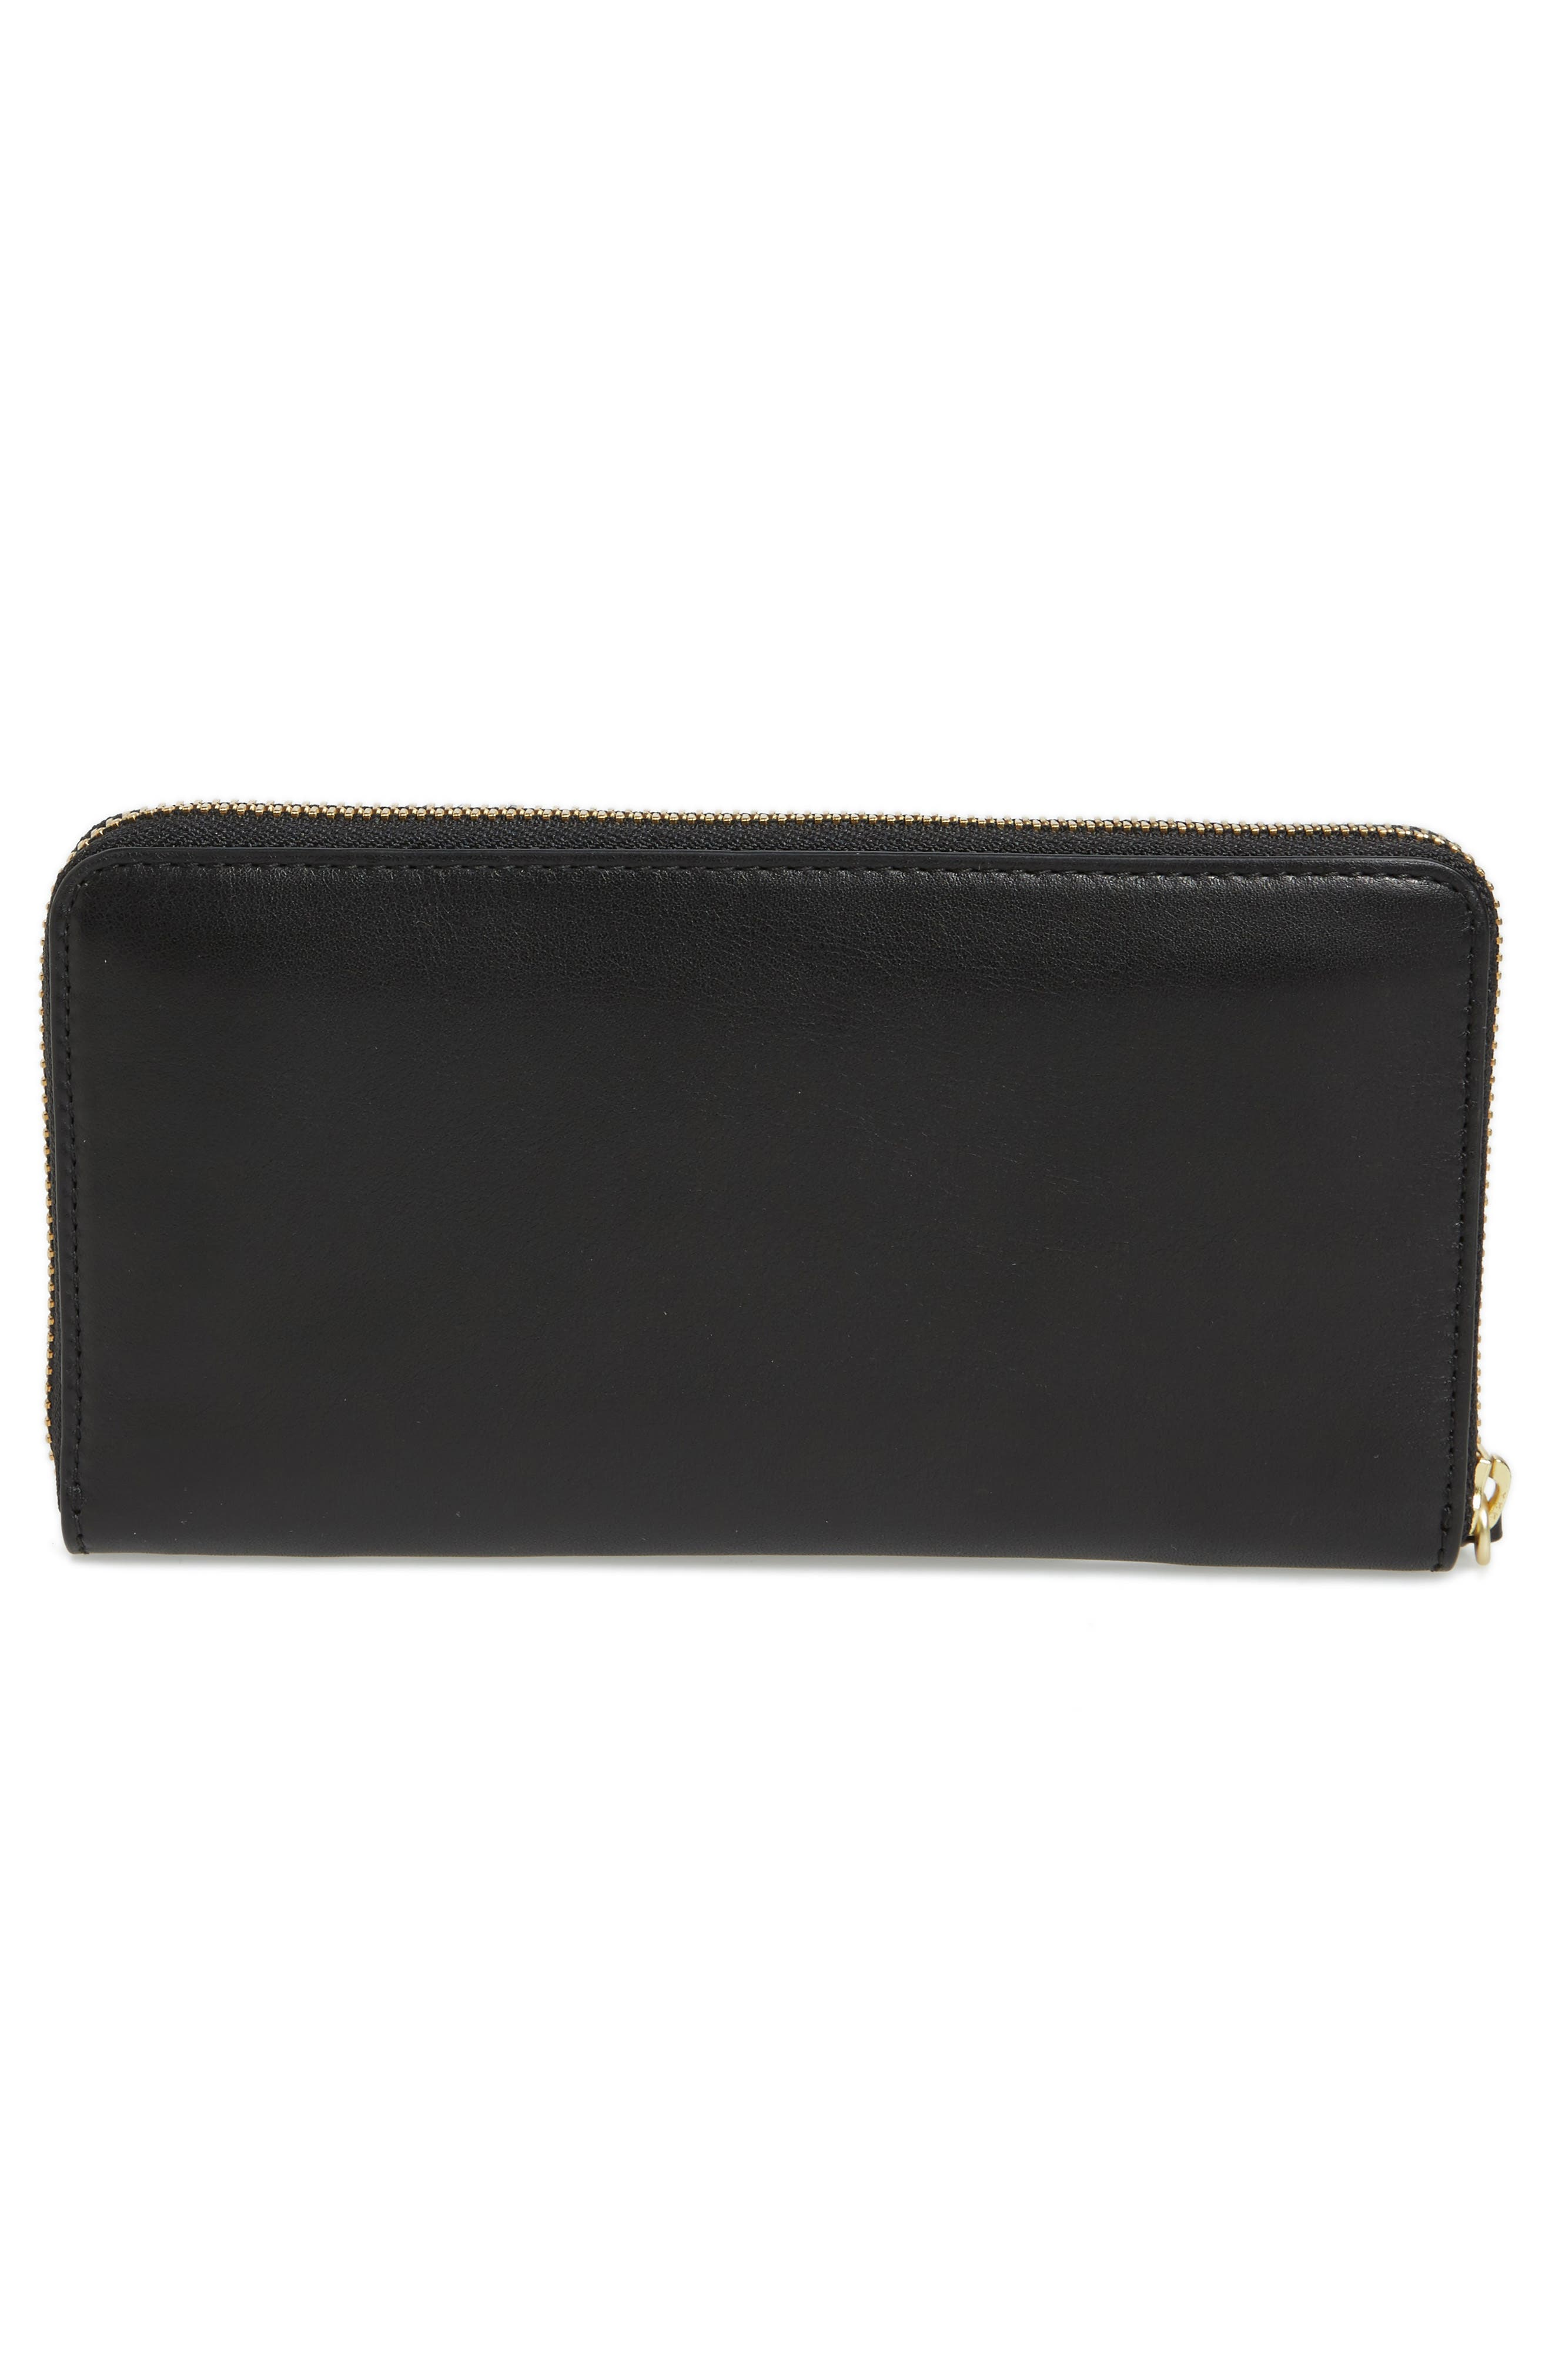 Leather Continental Wallet,                             Alternate thumbnail 4, color,                             001